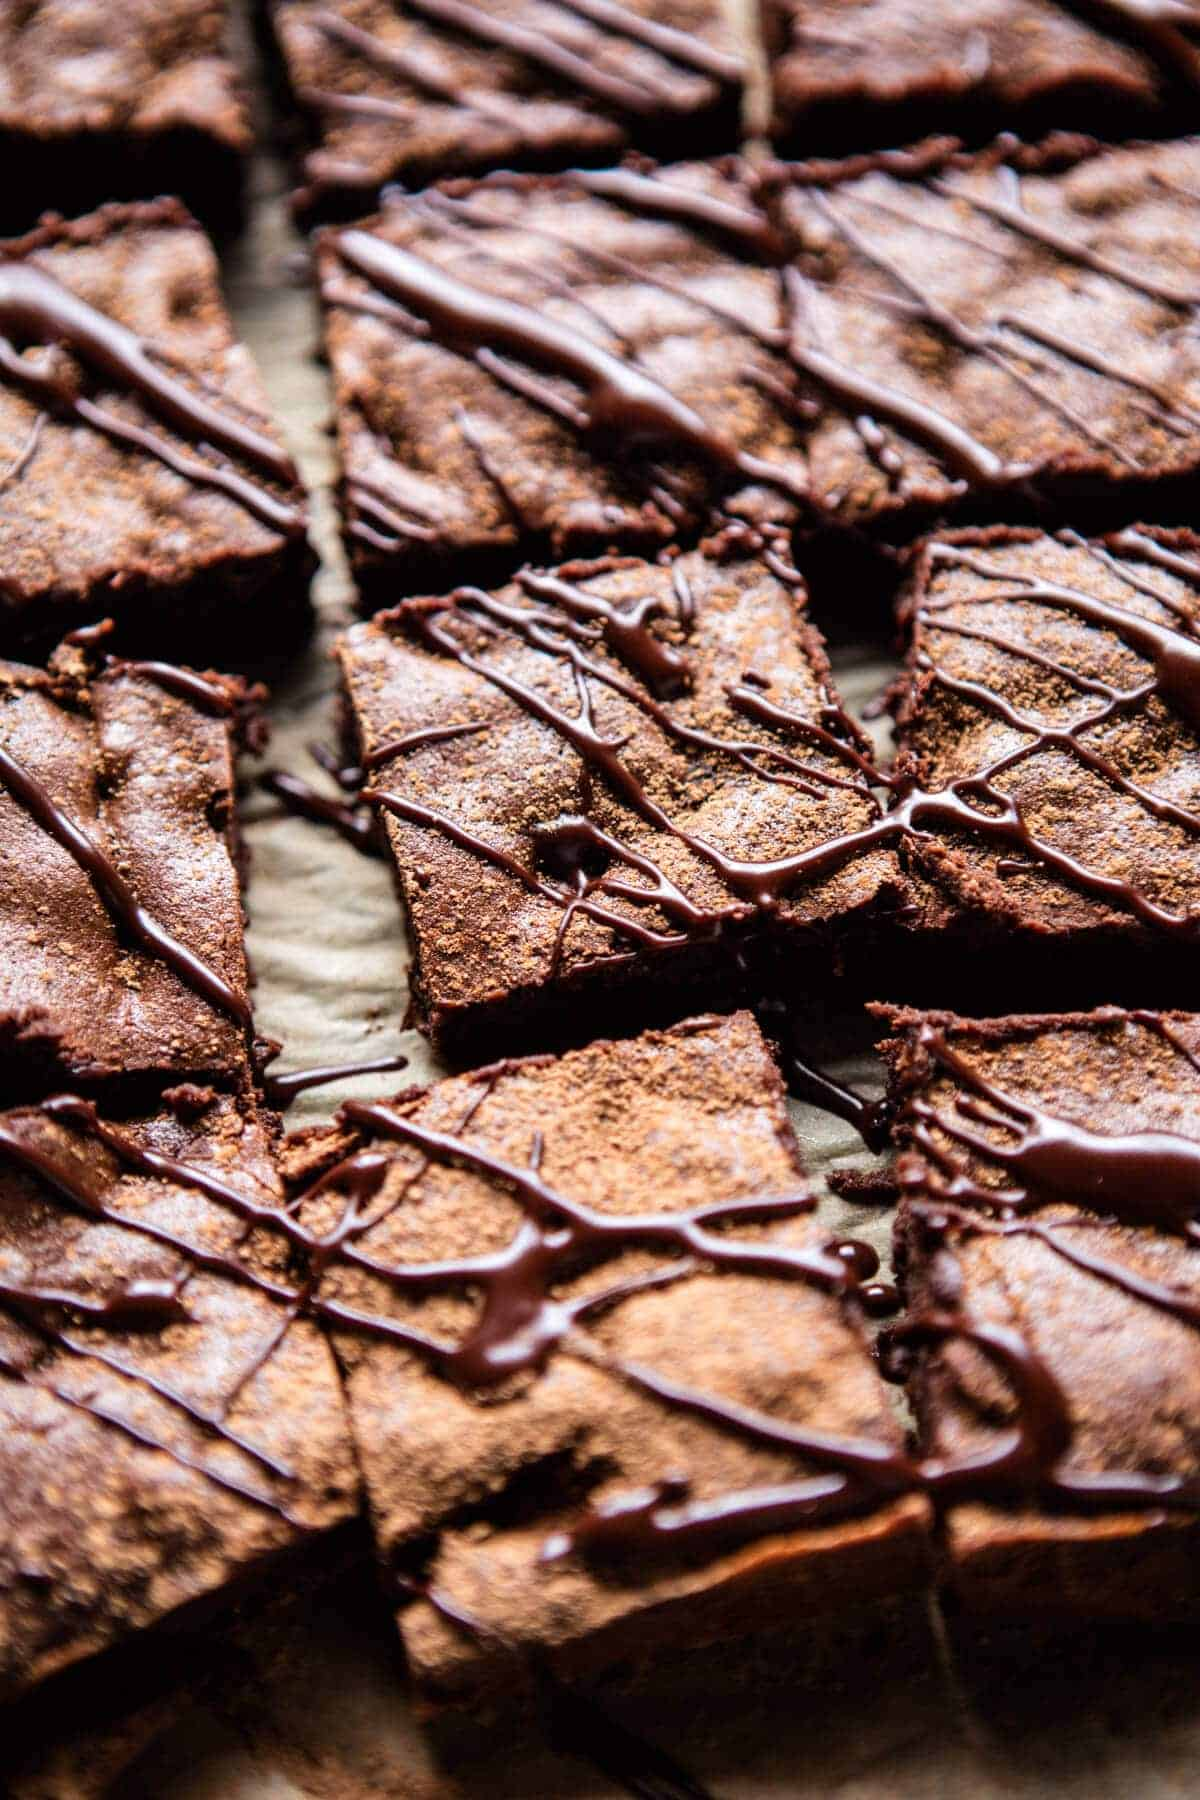 One Bowl 8 Ingredient Irish Coffee Fudge Brownies | halfbakedharvest.com @hbharvest